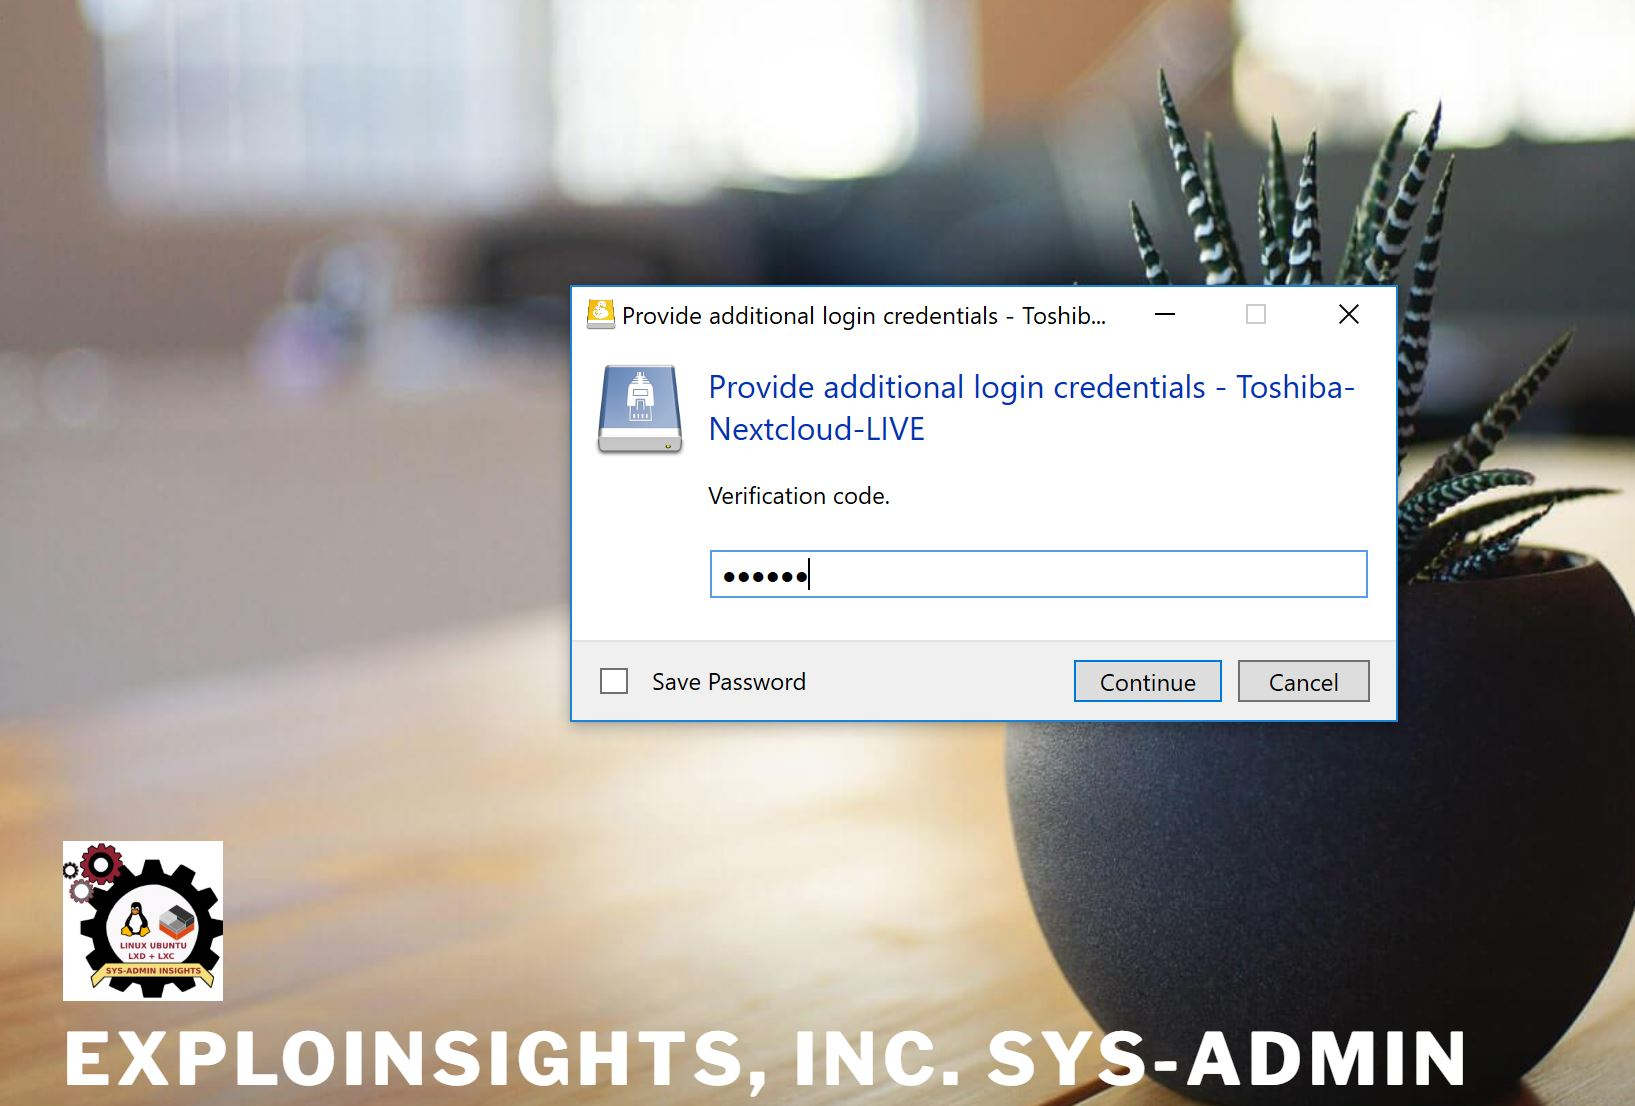 LXC – EXPLOINSIGHTS, INC  Sys-Admin